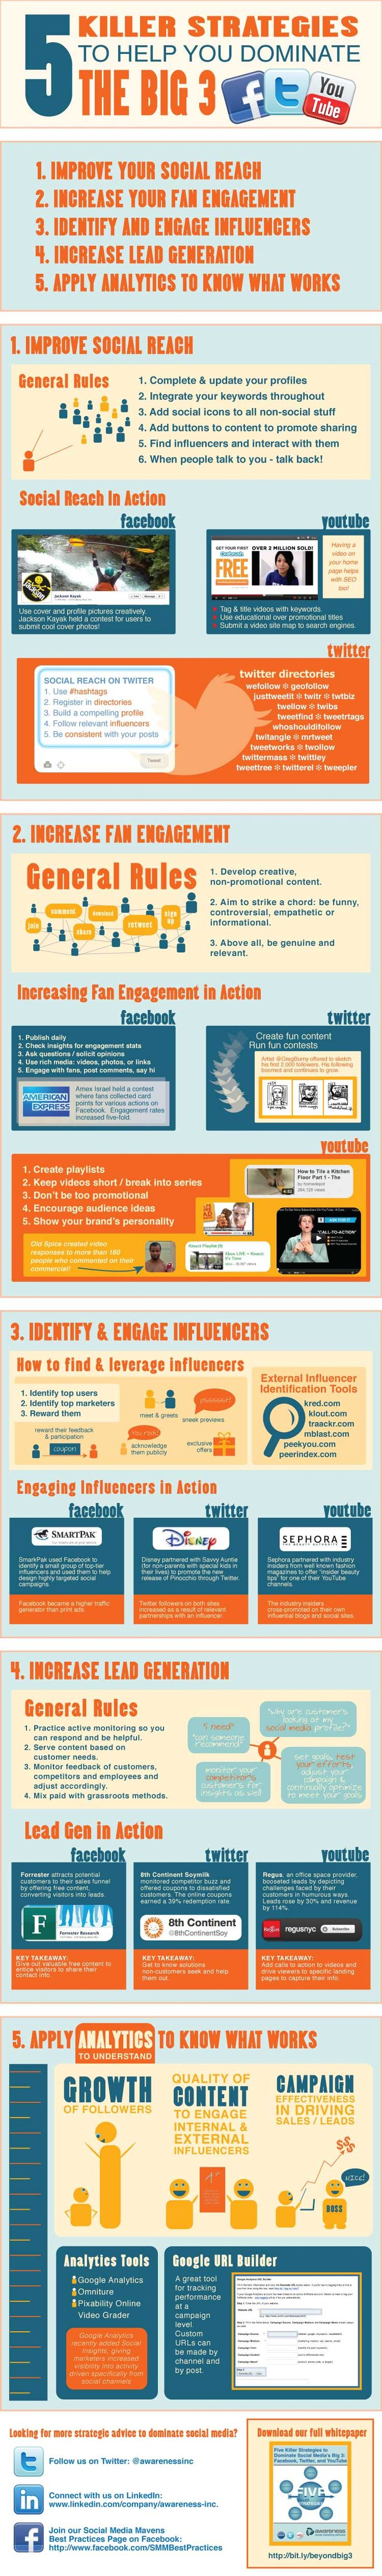 Social Media Strategies #socialmedia #Infographic